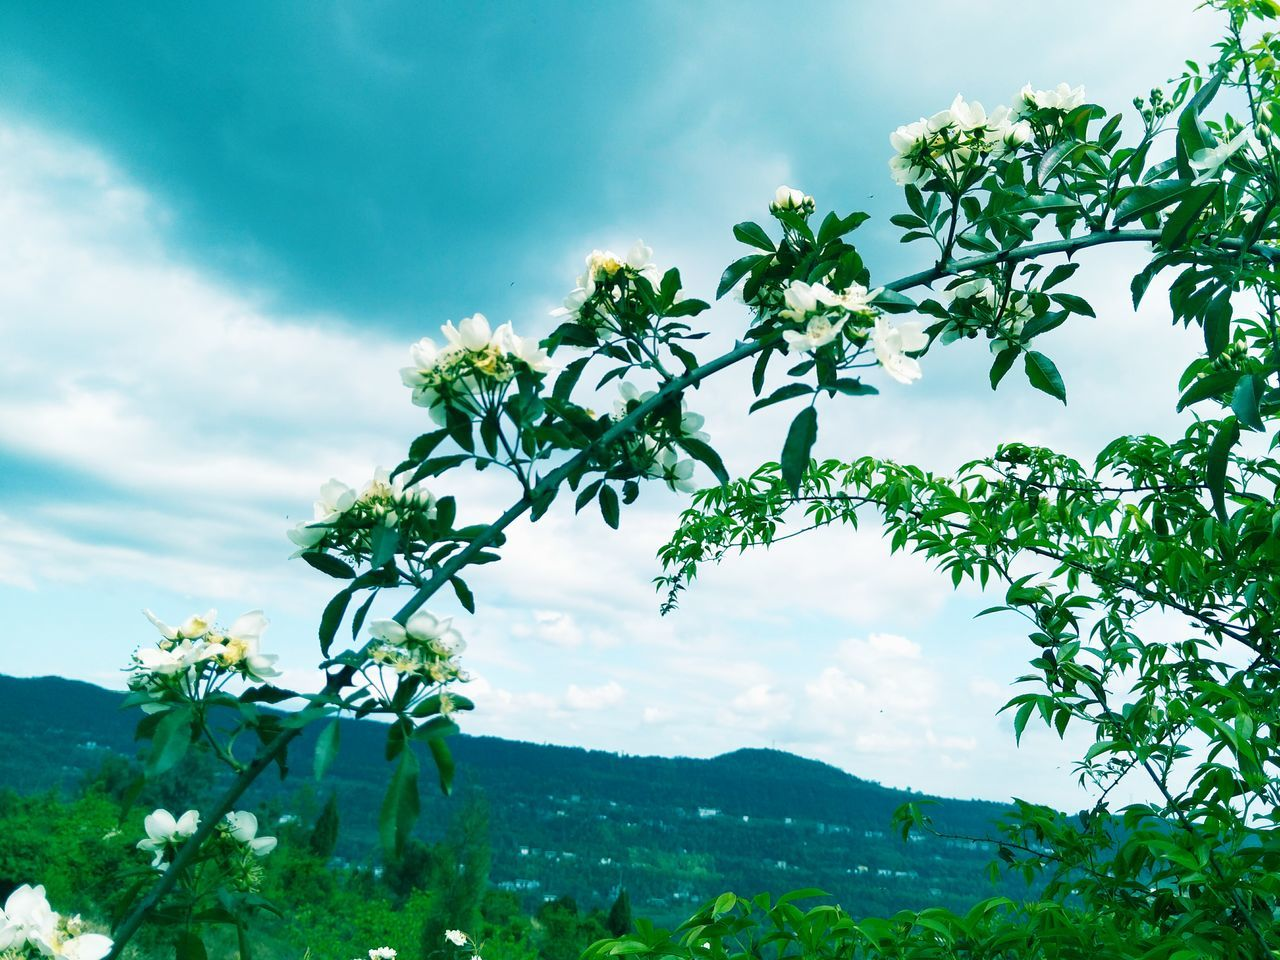 growth, sky, nature, cloud - sky, plant, beauty in nature, tree, day, no people, outdoors, leaf, tranquility, low angle view, scenics, green color, freshness, flower, fragility, landscape, close-up